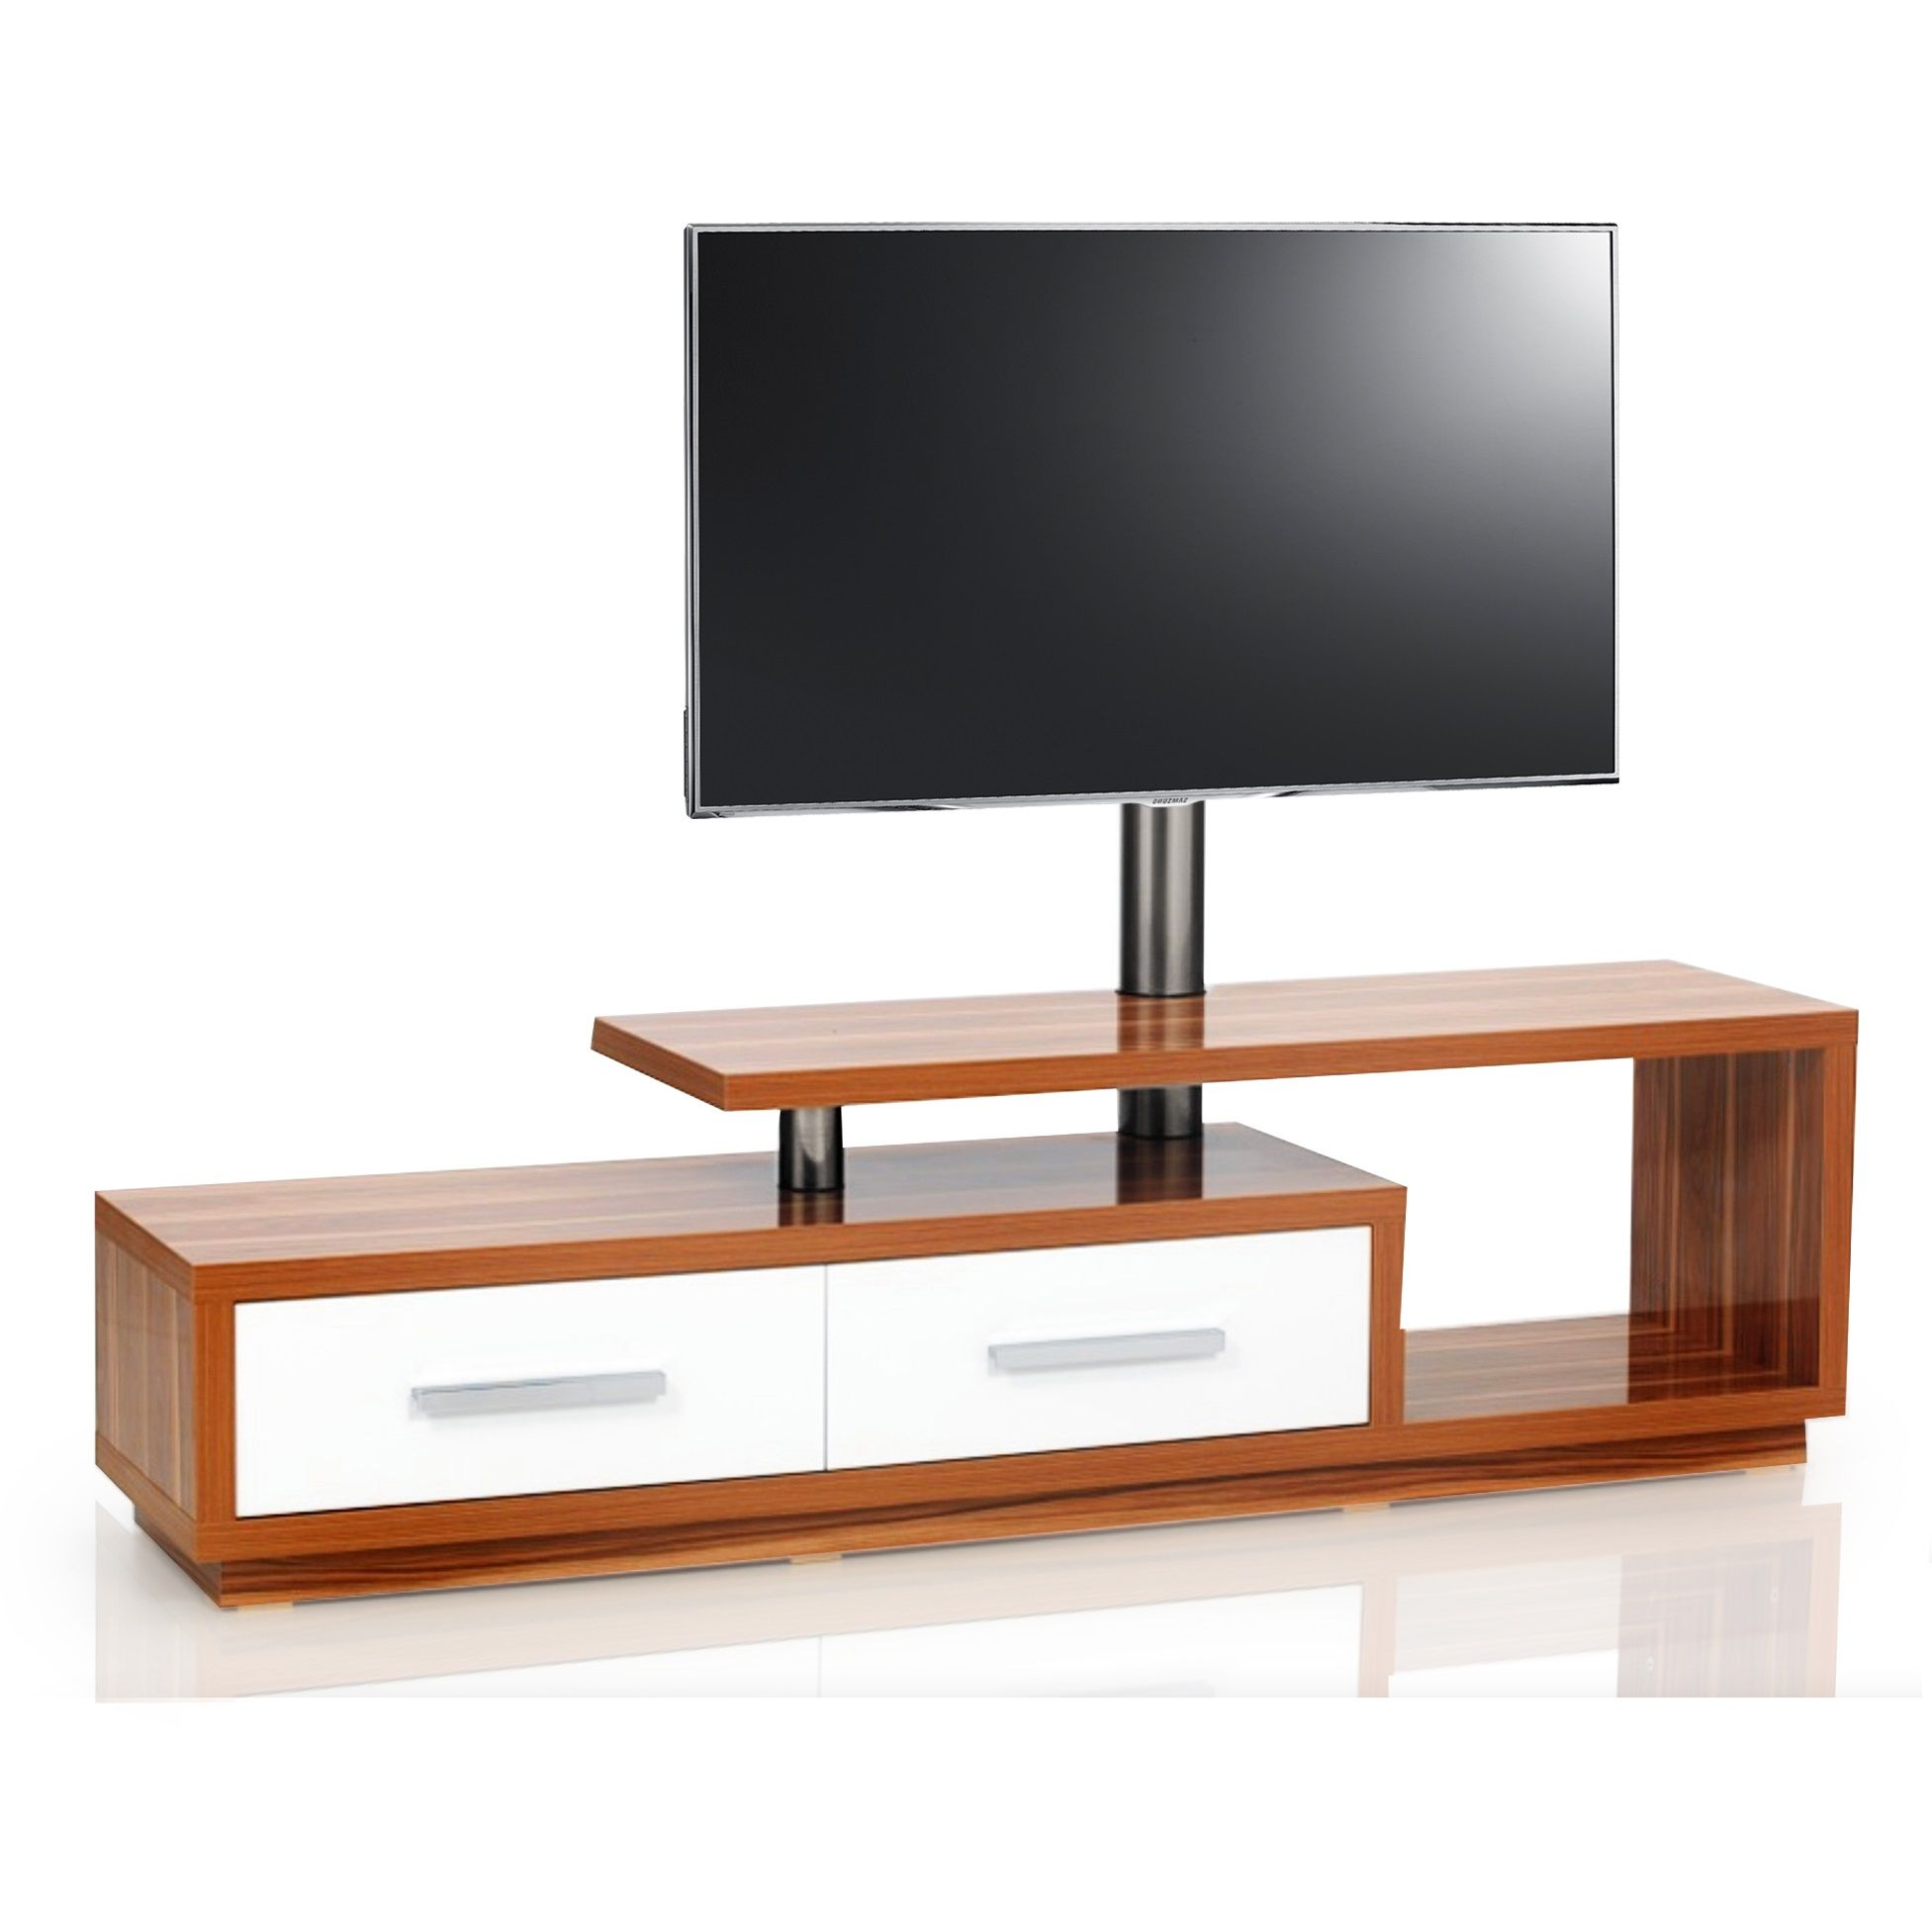 Table Tv En Bois - Stunning Tables De Television Contemporary Joshkrajcik Us [mjhdah]http://www.royaledeco.com/75689/meuble-tv-design-bois-massif-lagos-135-cm.jpg